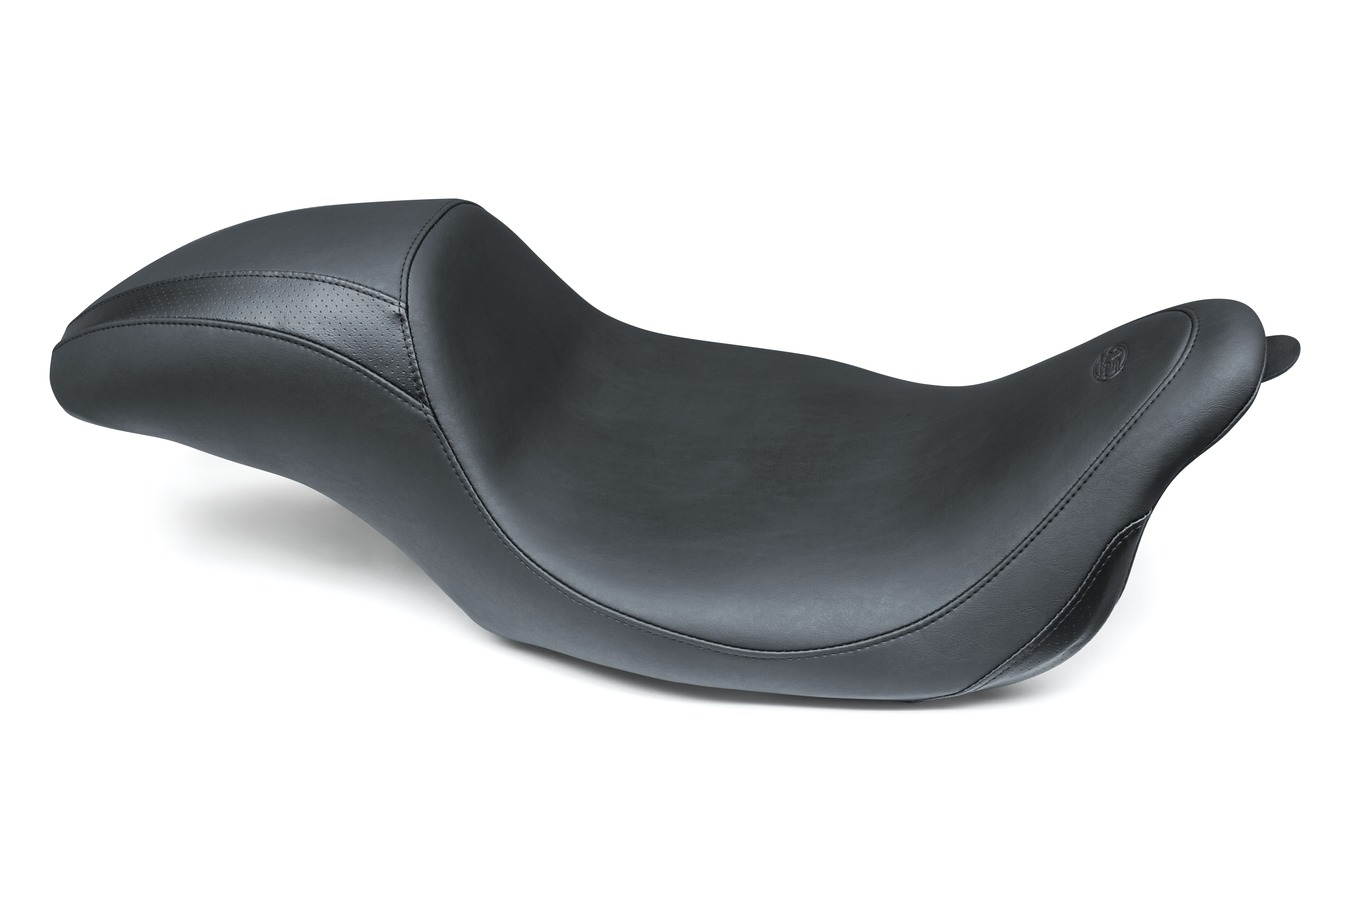 Hightail Fastback™ One-Piece Seat, Original, Black